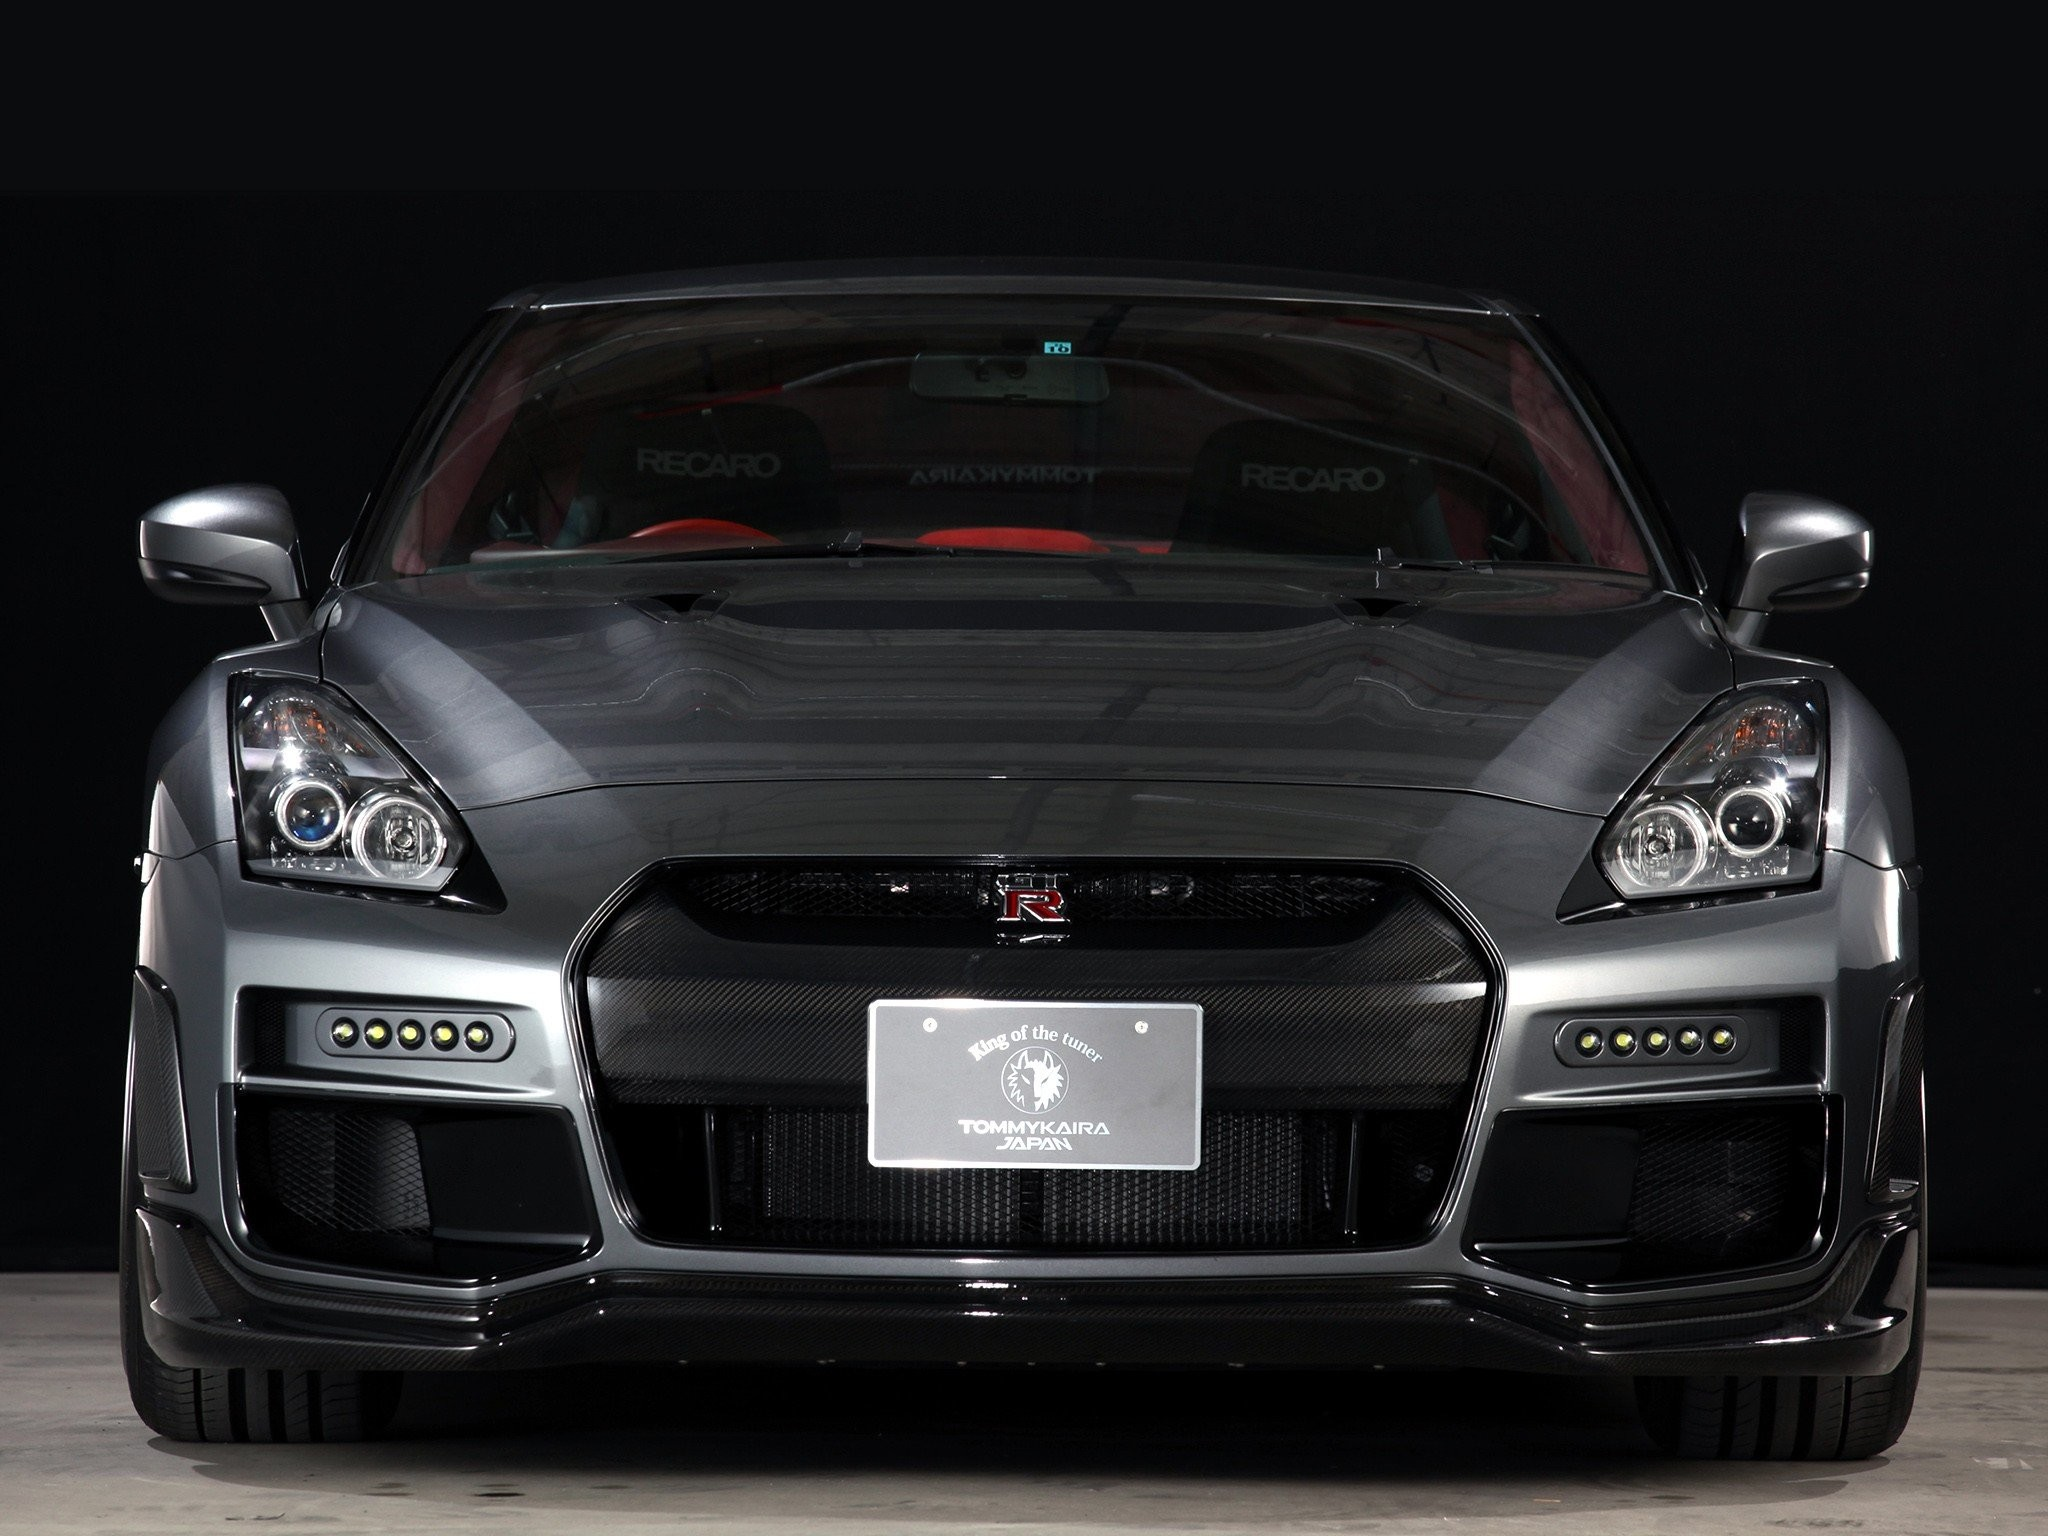 Nissan Gtr Wallpapers 73 Images